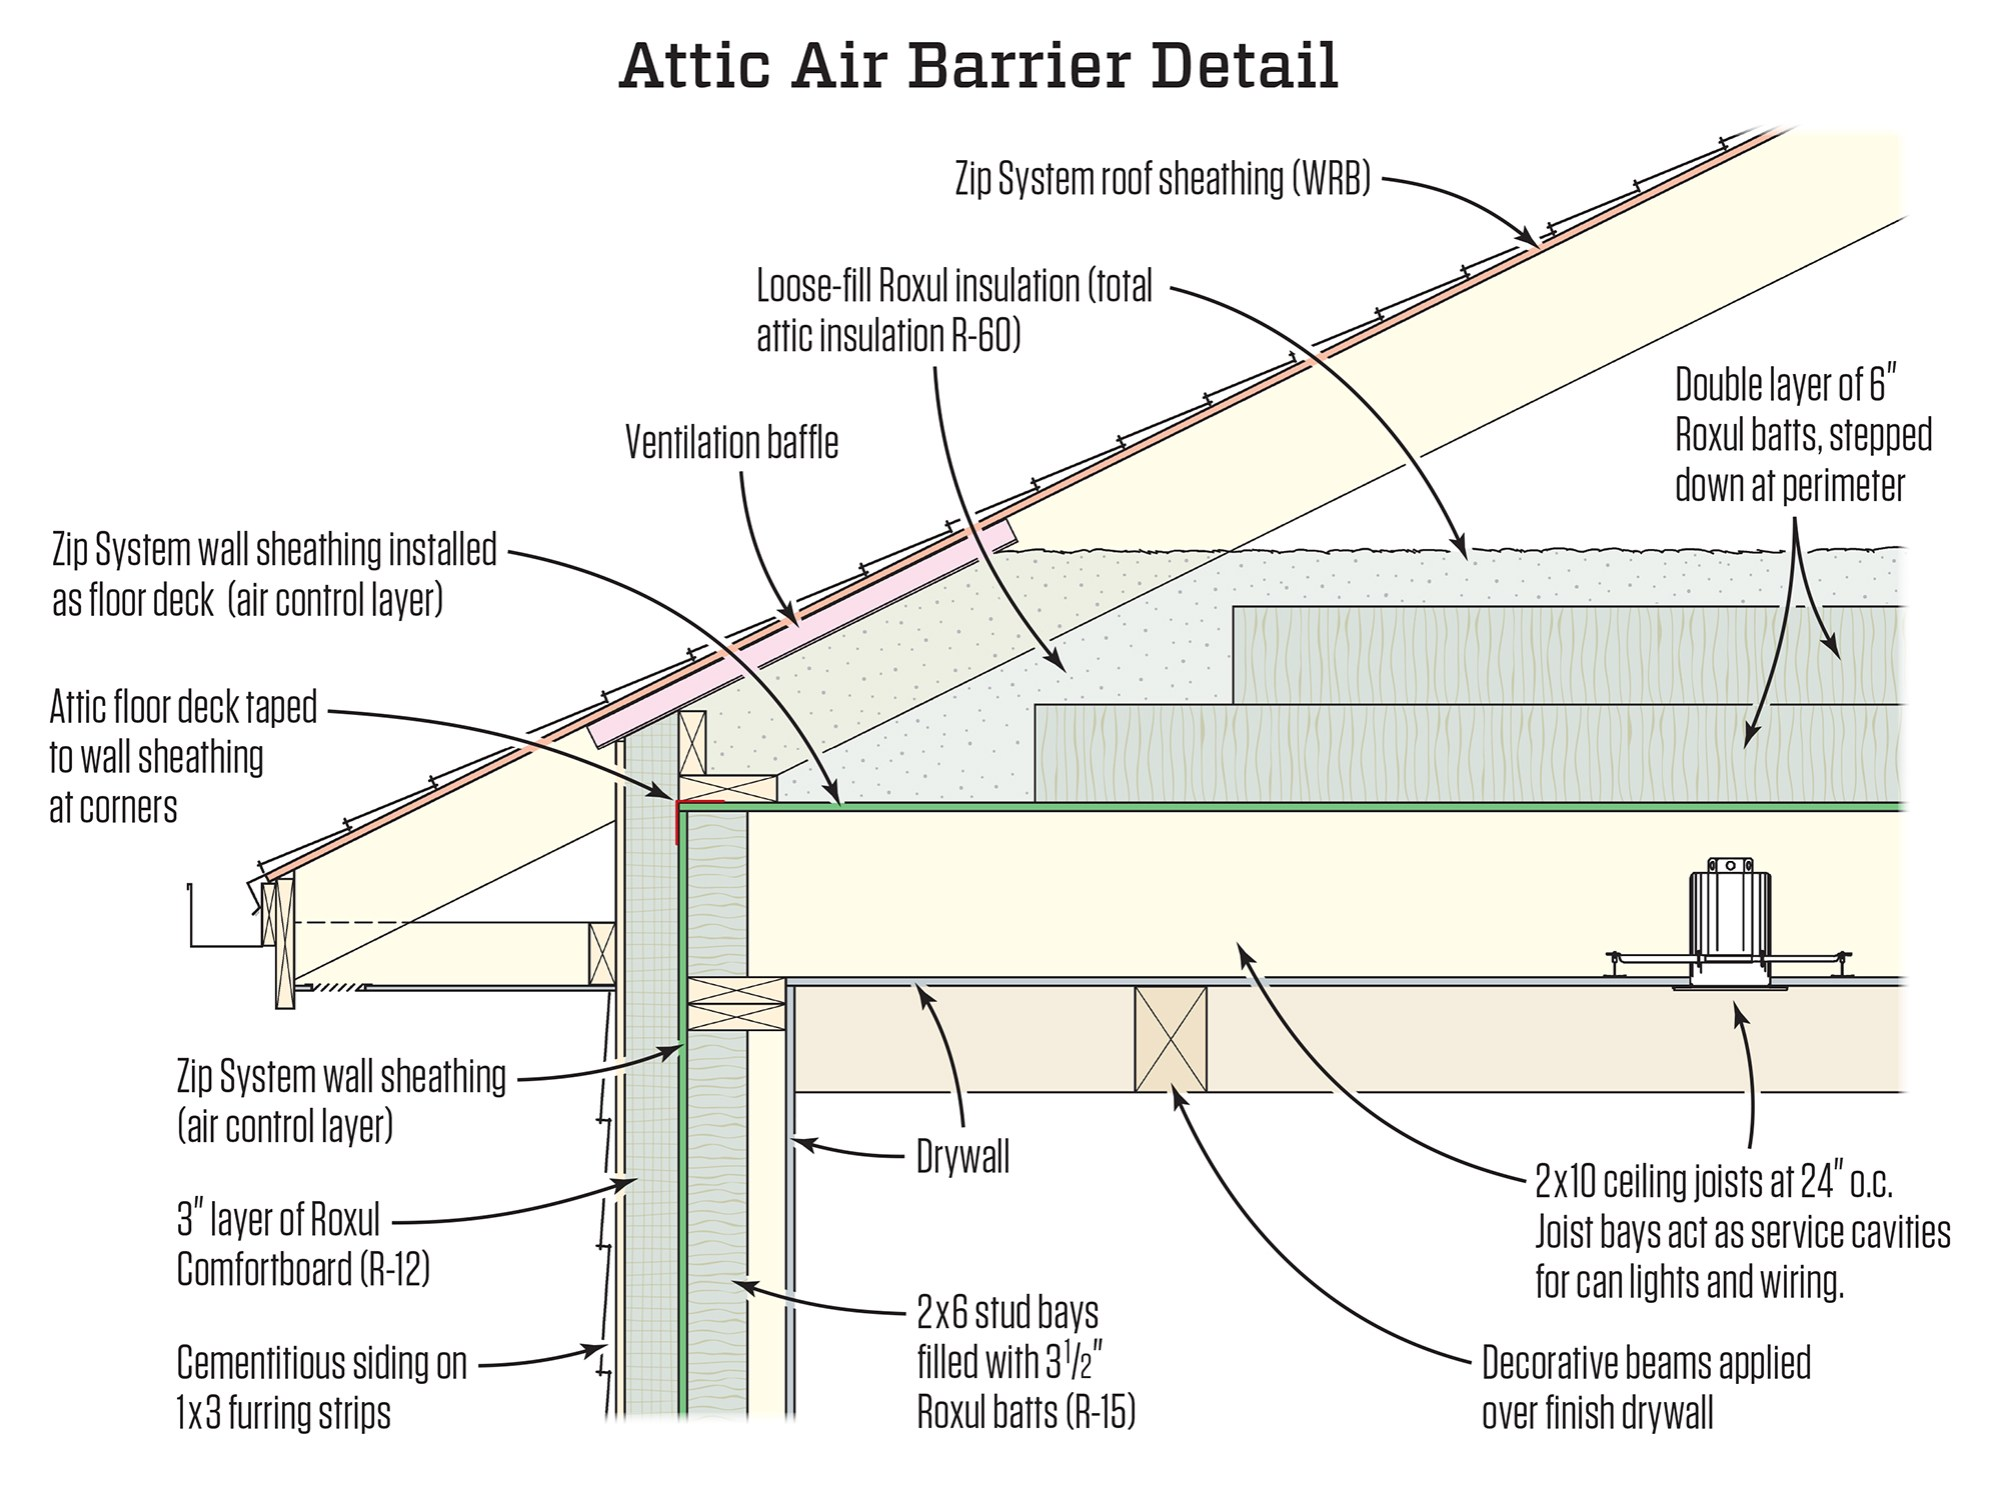 hight resolution of  layer that aligns perfectly with a fully sealed air barrier isolating the living space below from the unconditioned fully ventilated attic above